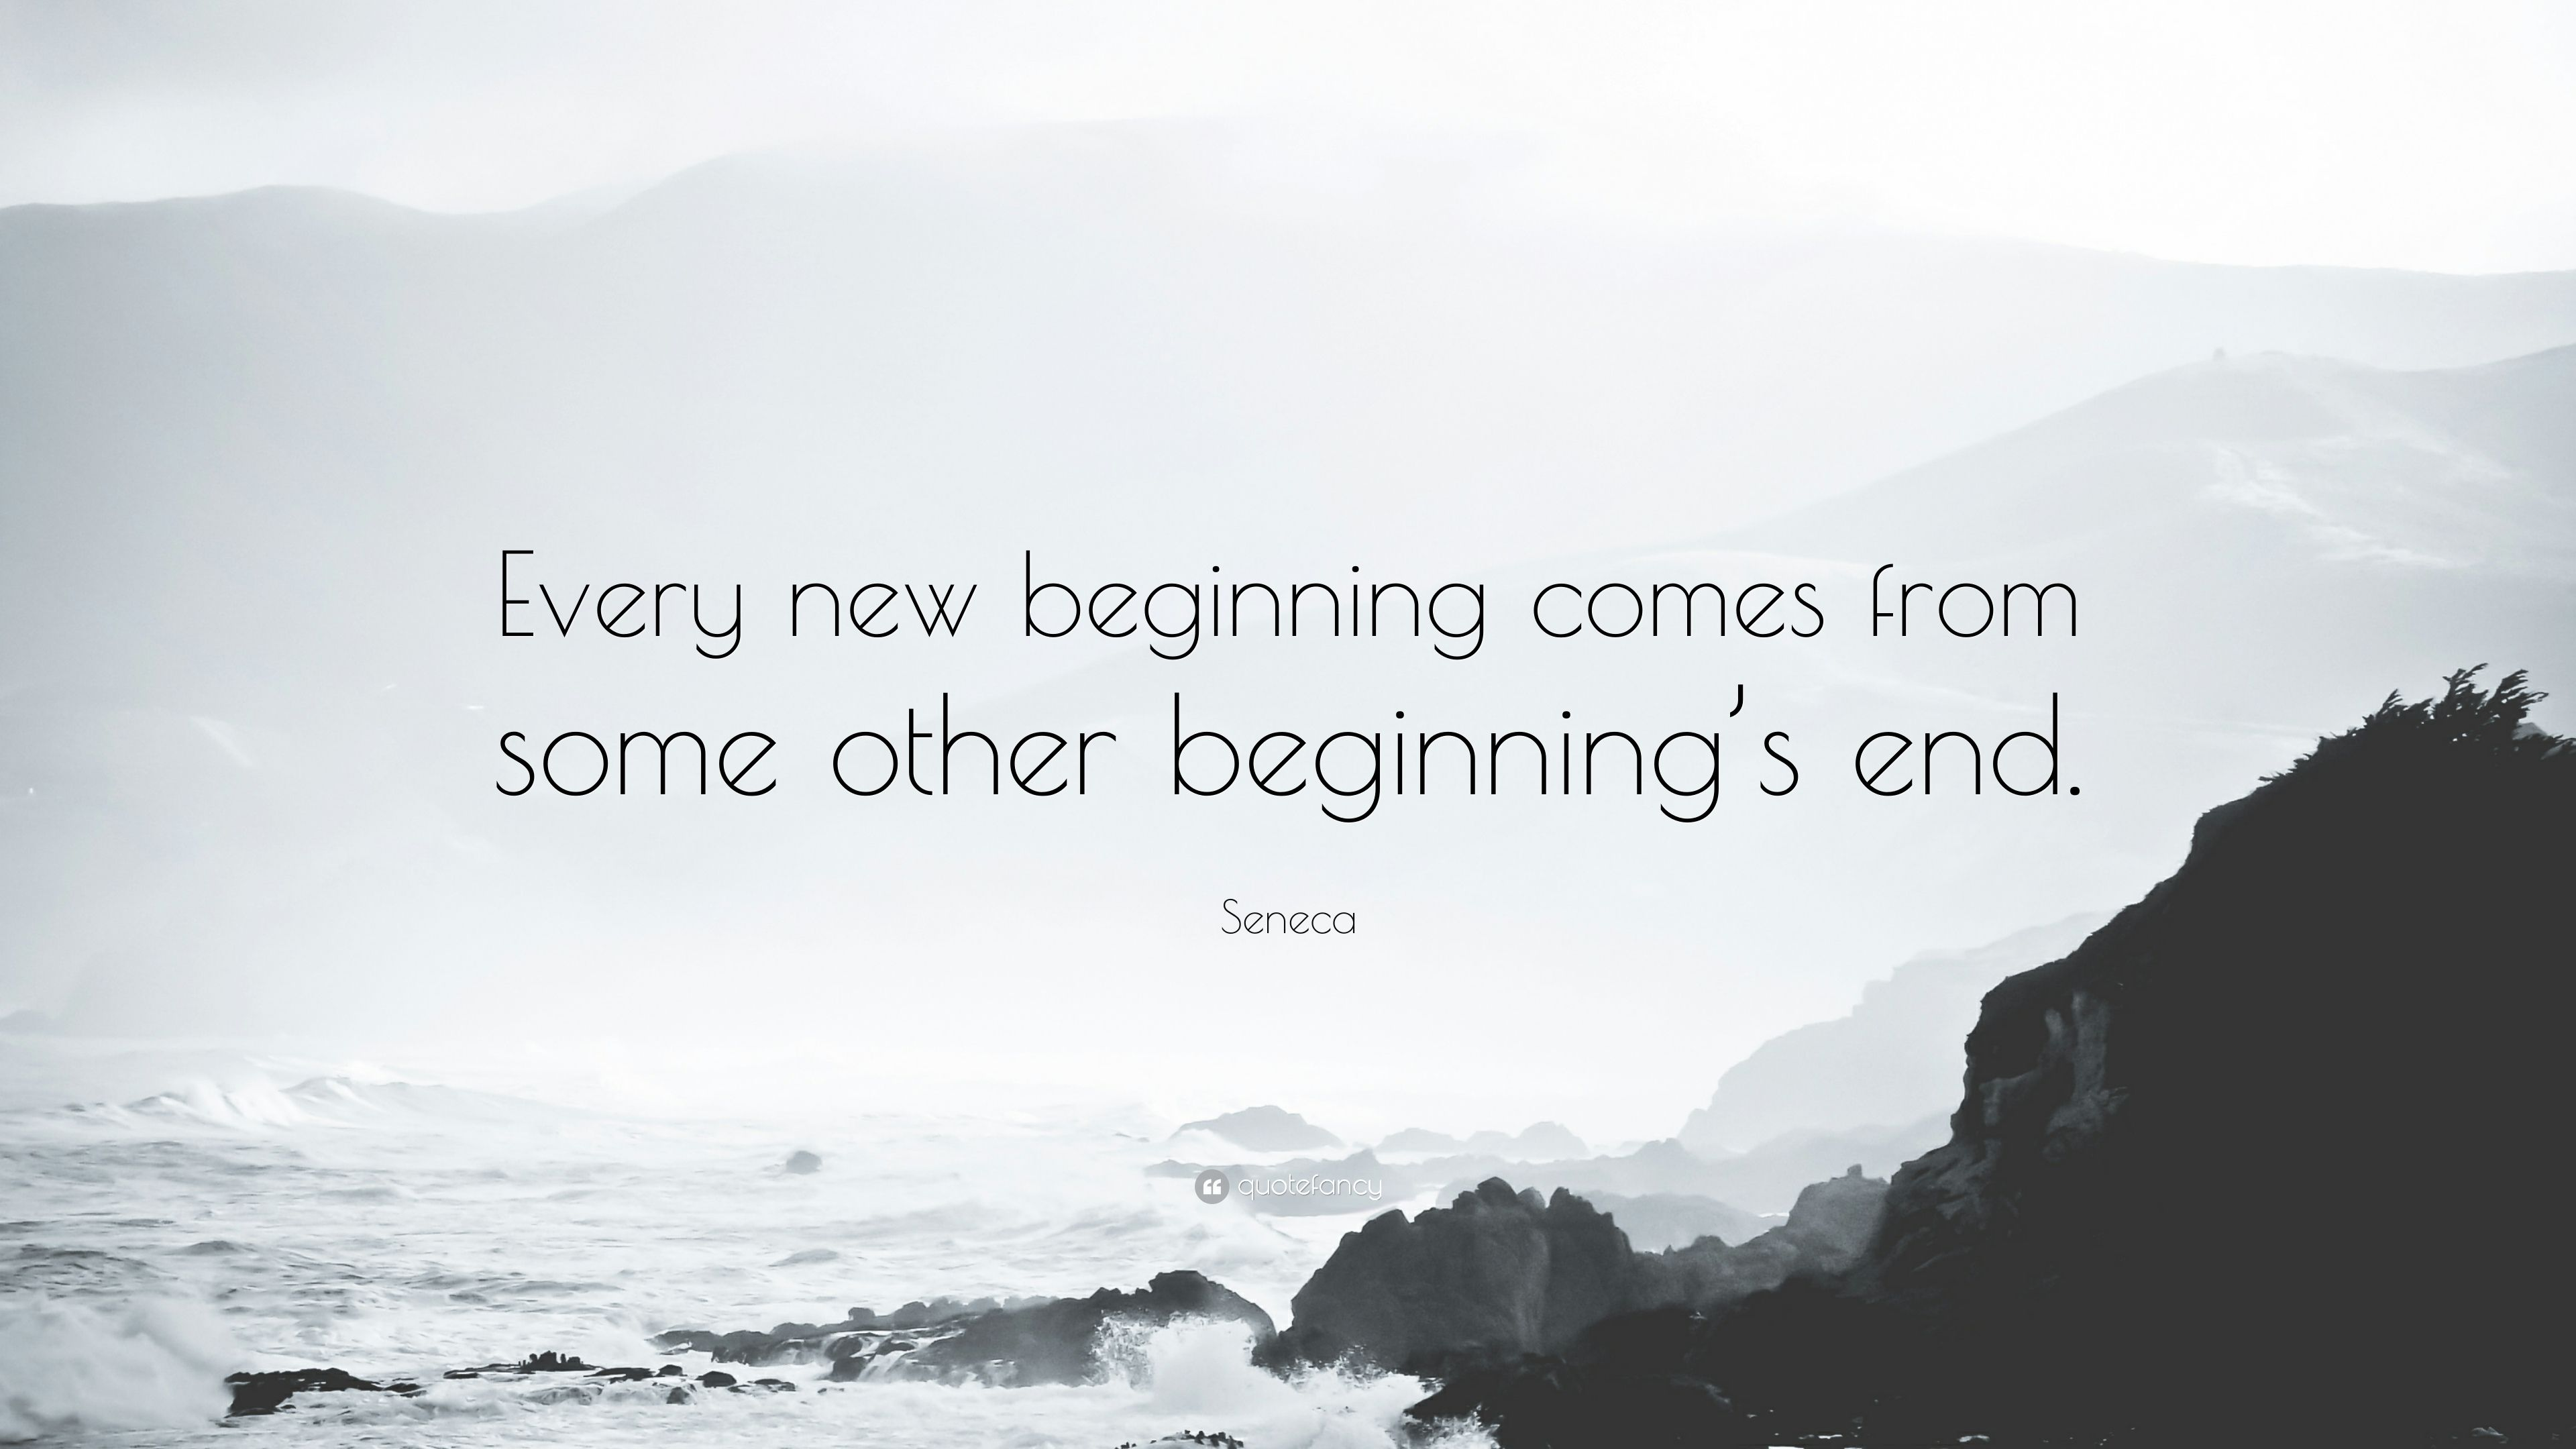 Every New Beginning Comes From Some Other Beginning S End Lewis Carroll Quotes John Lennon Quotes Quotes About Photography